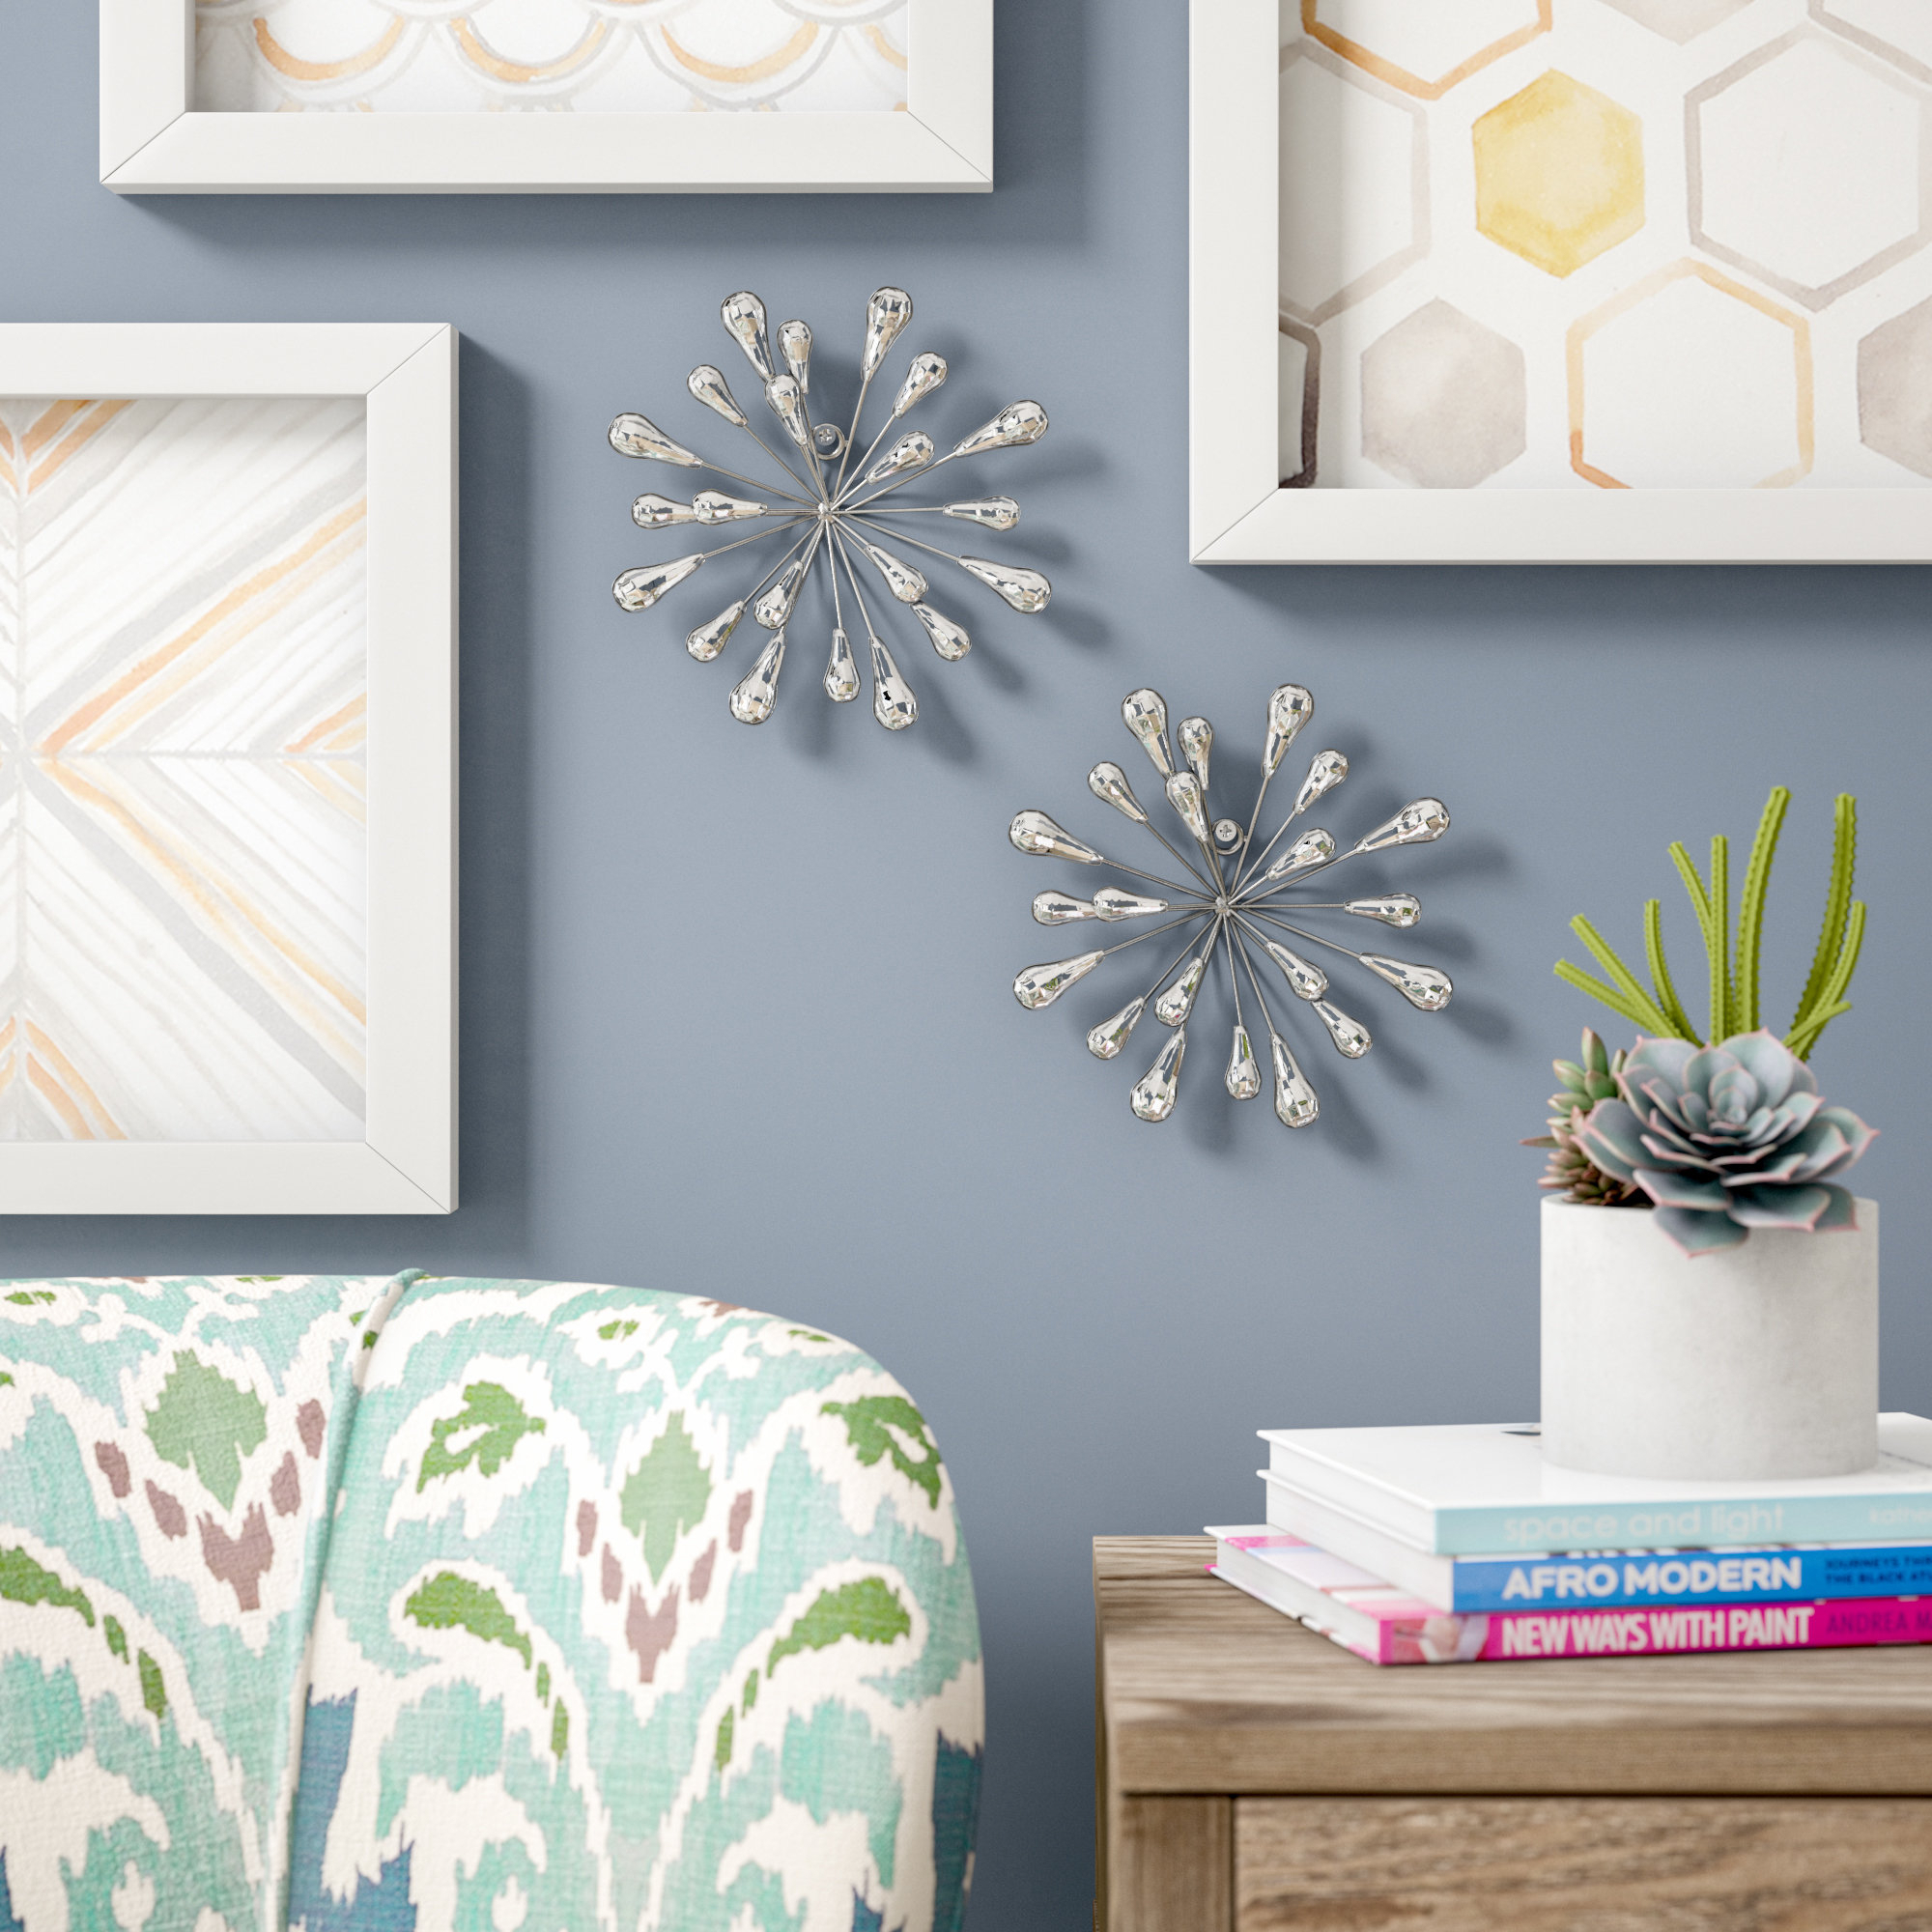 2 Piece Starburst Wall Décor Set Intended For Starburst Wall Decor By Willa Arlo Interiors (View 1 of 30)